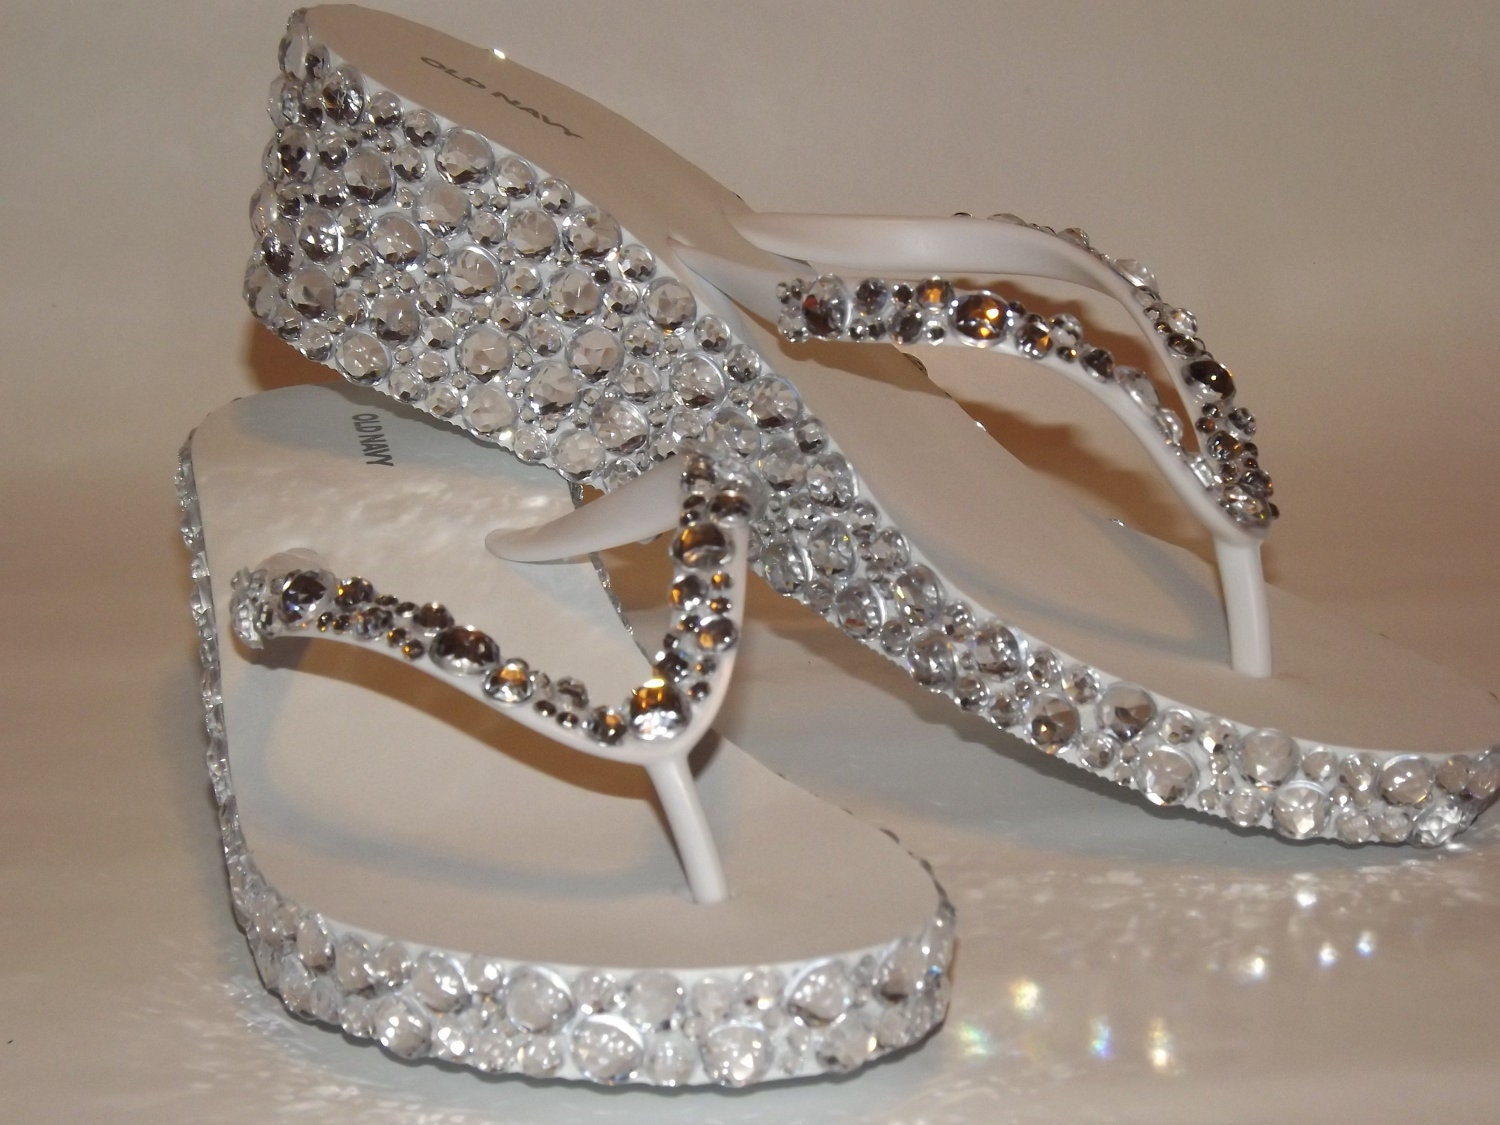 Crown Bling Wedding Flip Flops for the Bride, Bridesmaid Flip Flop Sandals & Flower Girl Shoes.